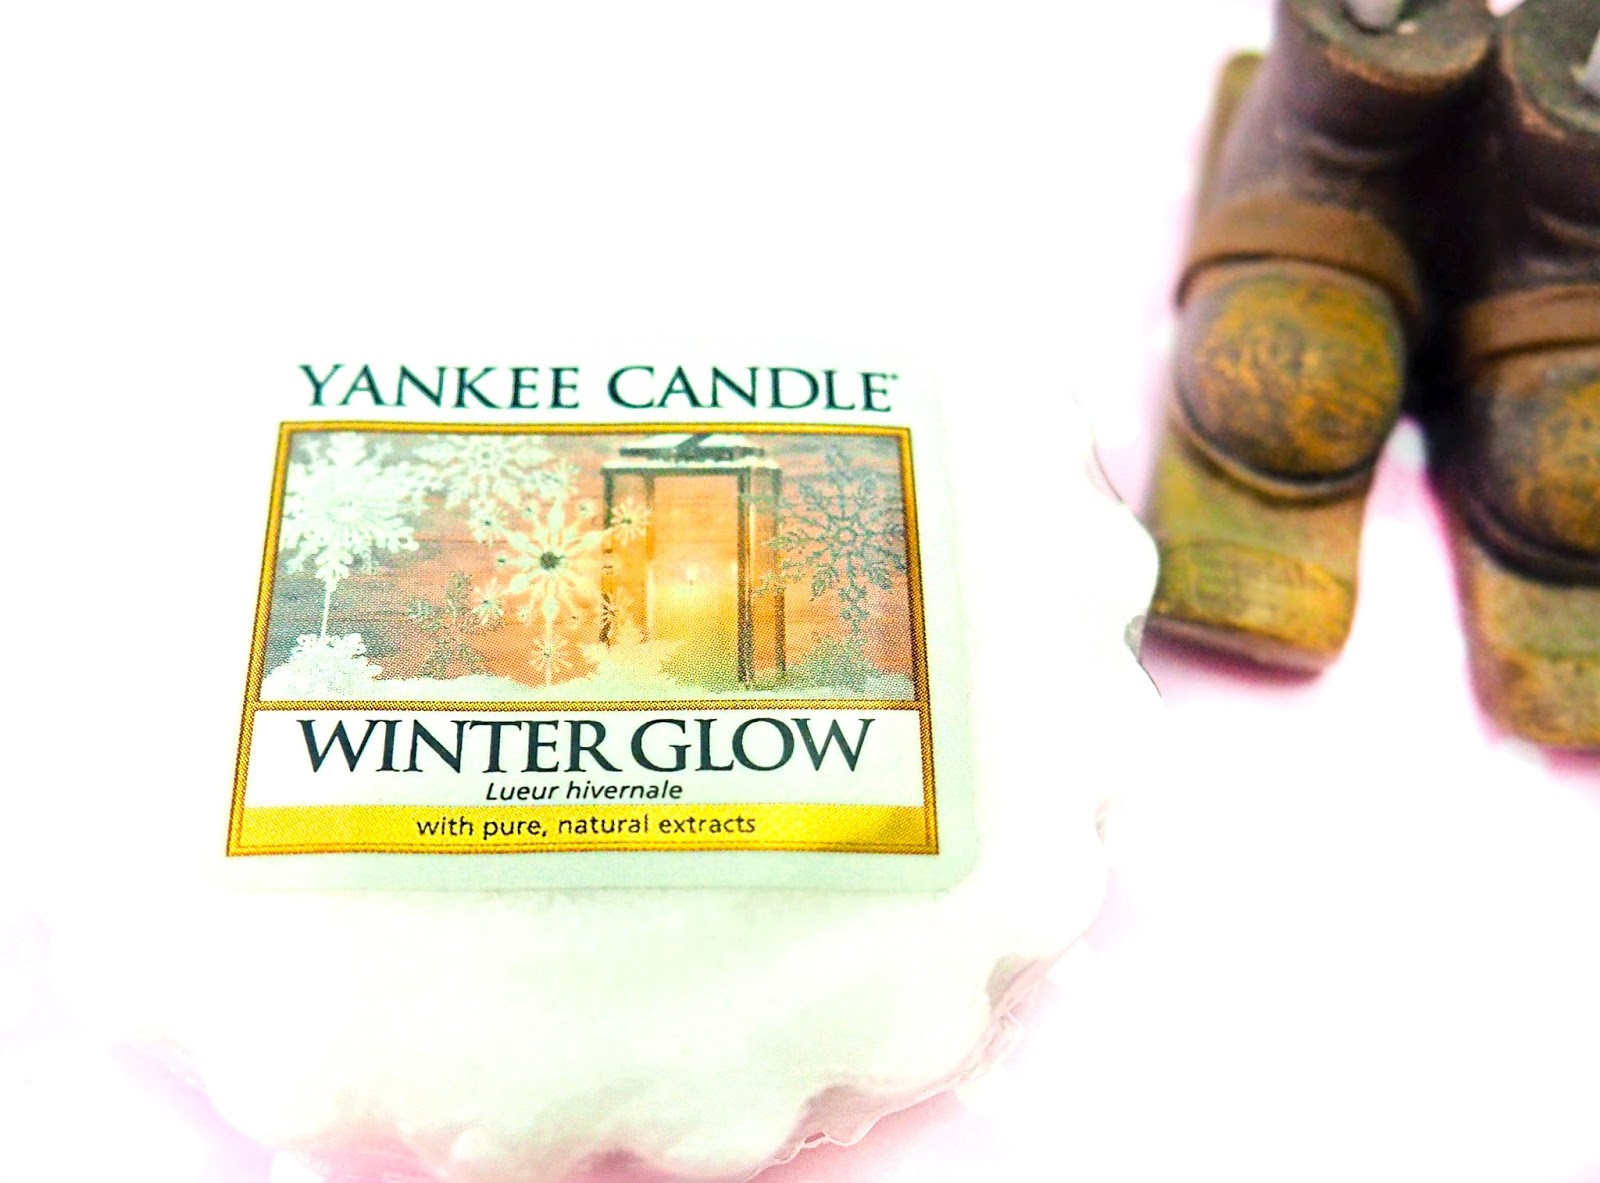 Yankee Candle 2015 Christmas Candle Review